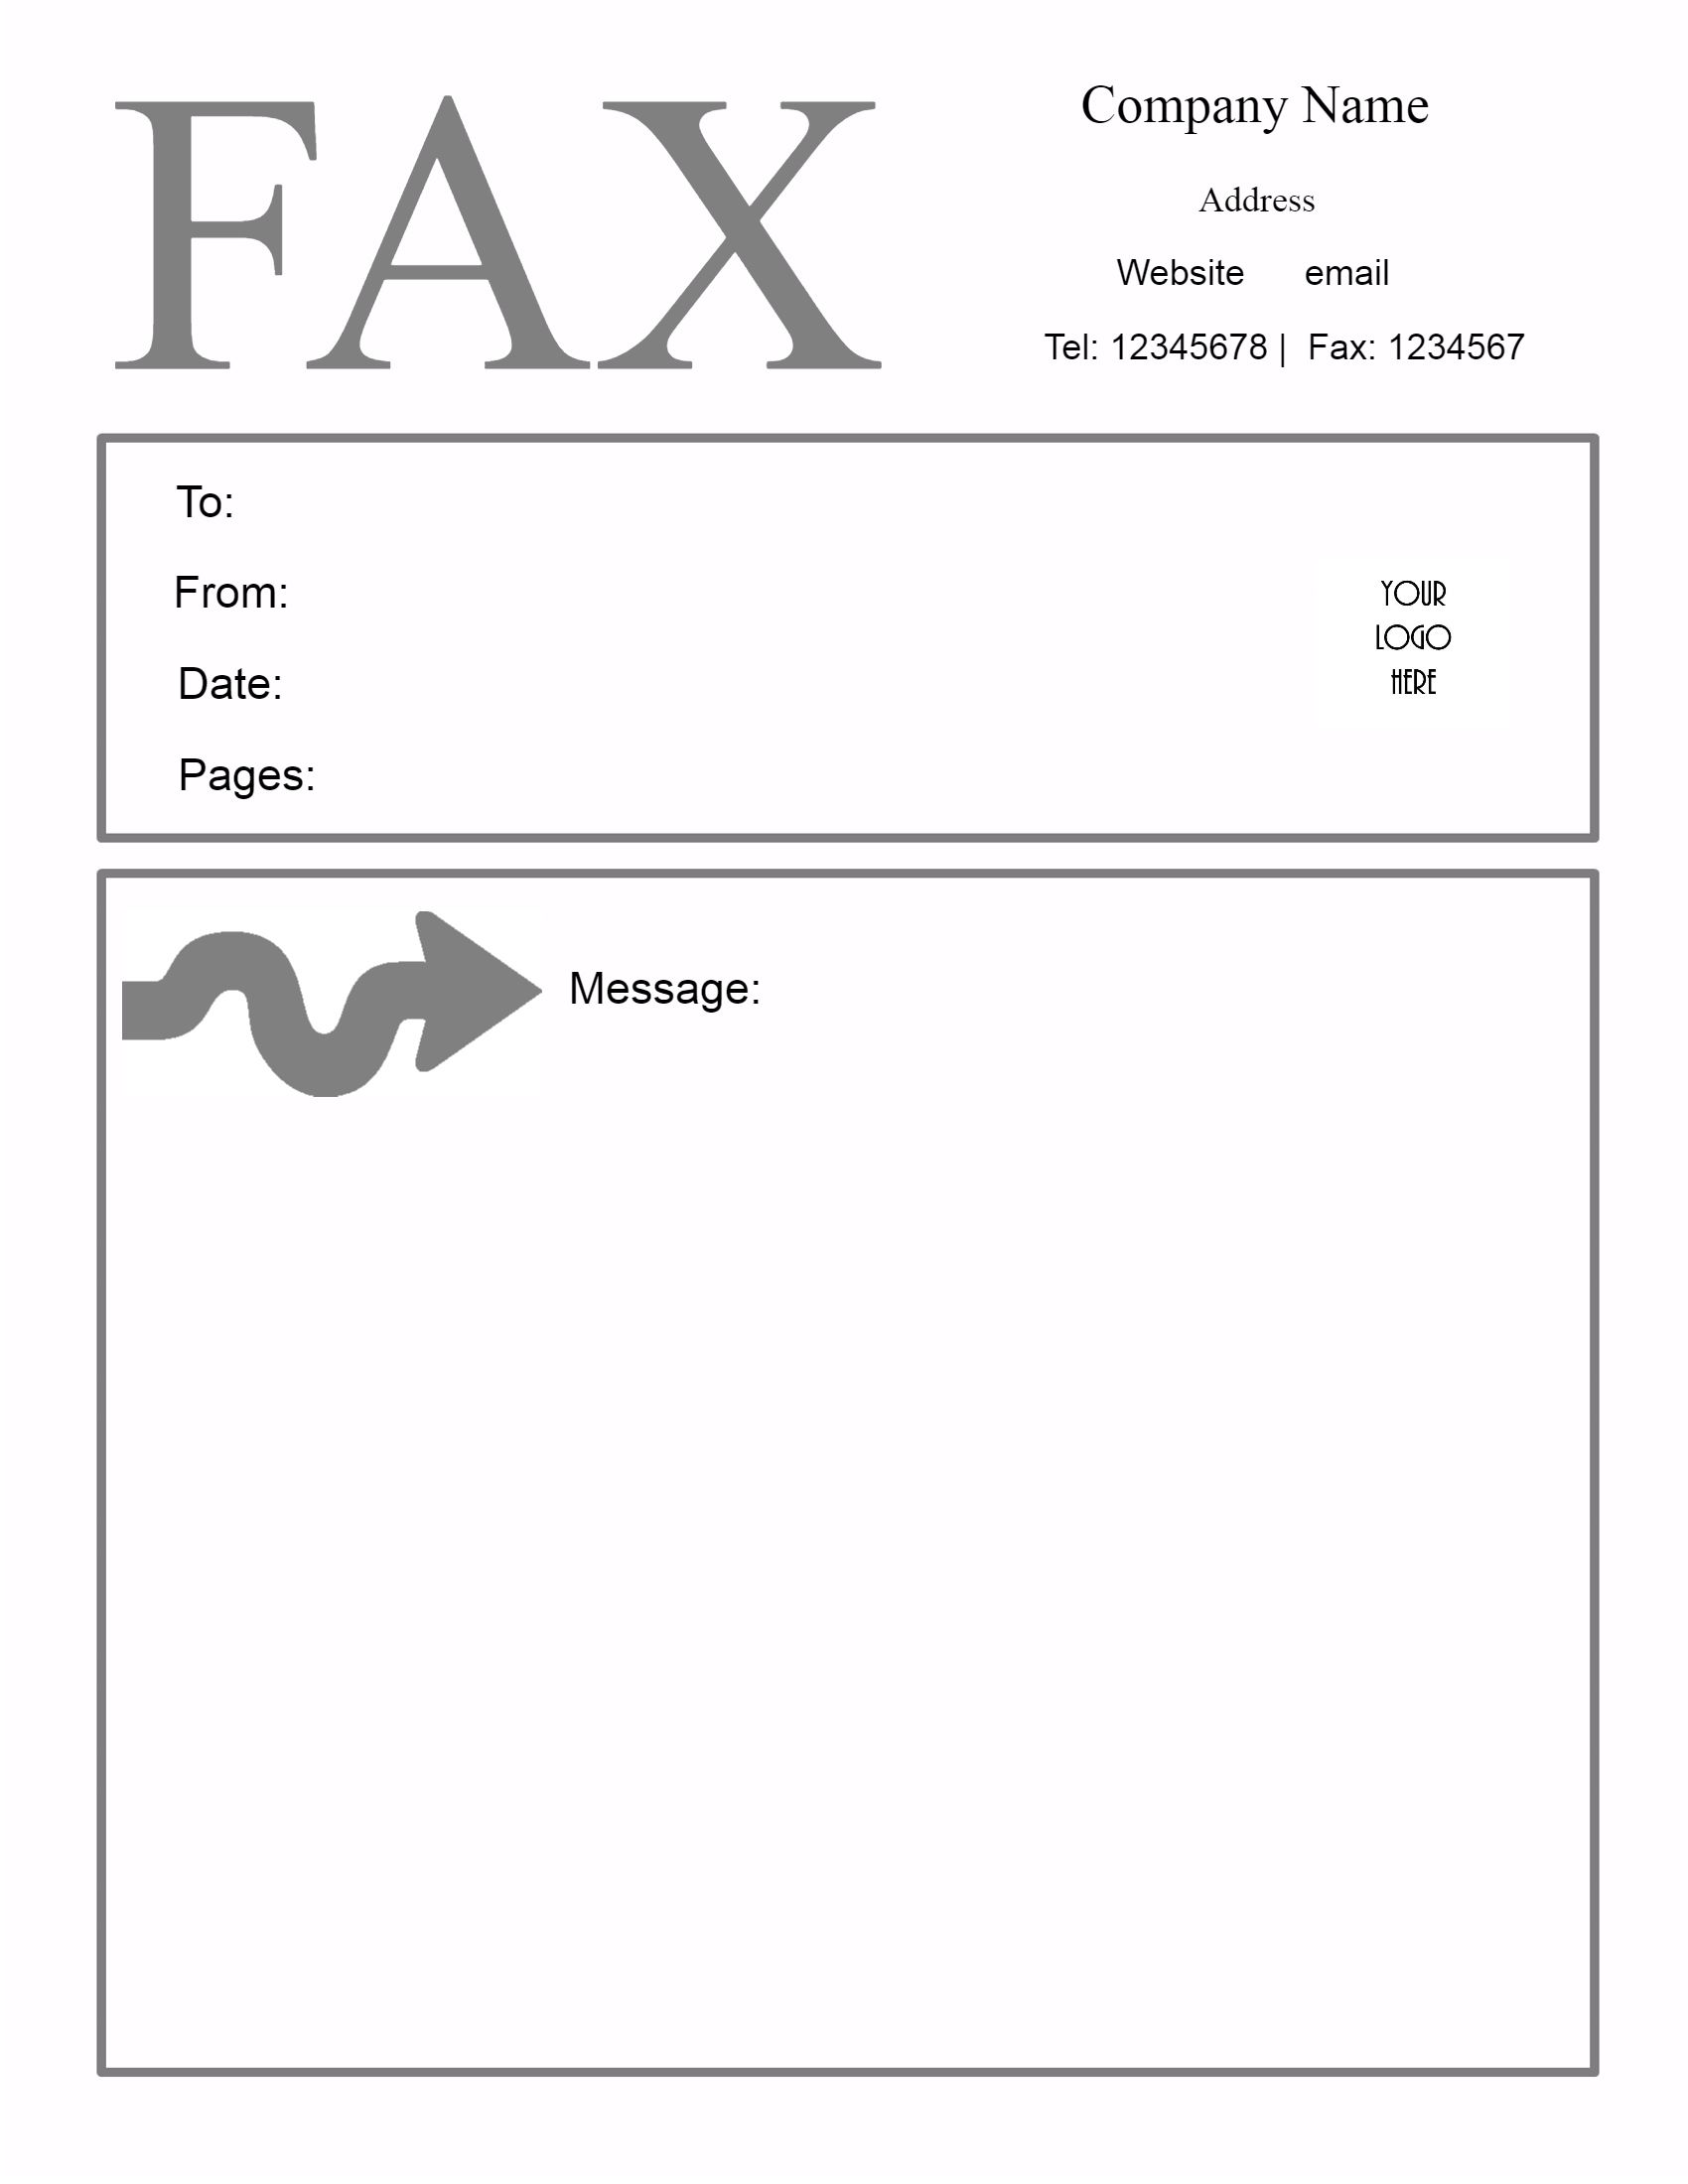 Free Fax Cover Sheet Template – Fax Cover Sheet Download